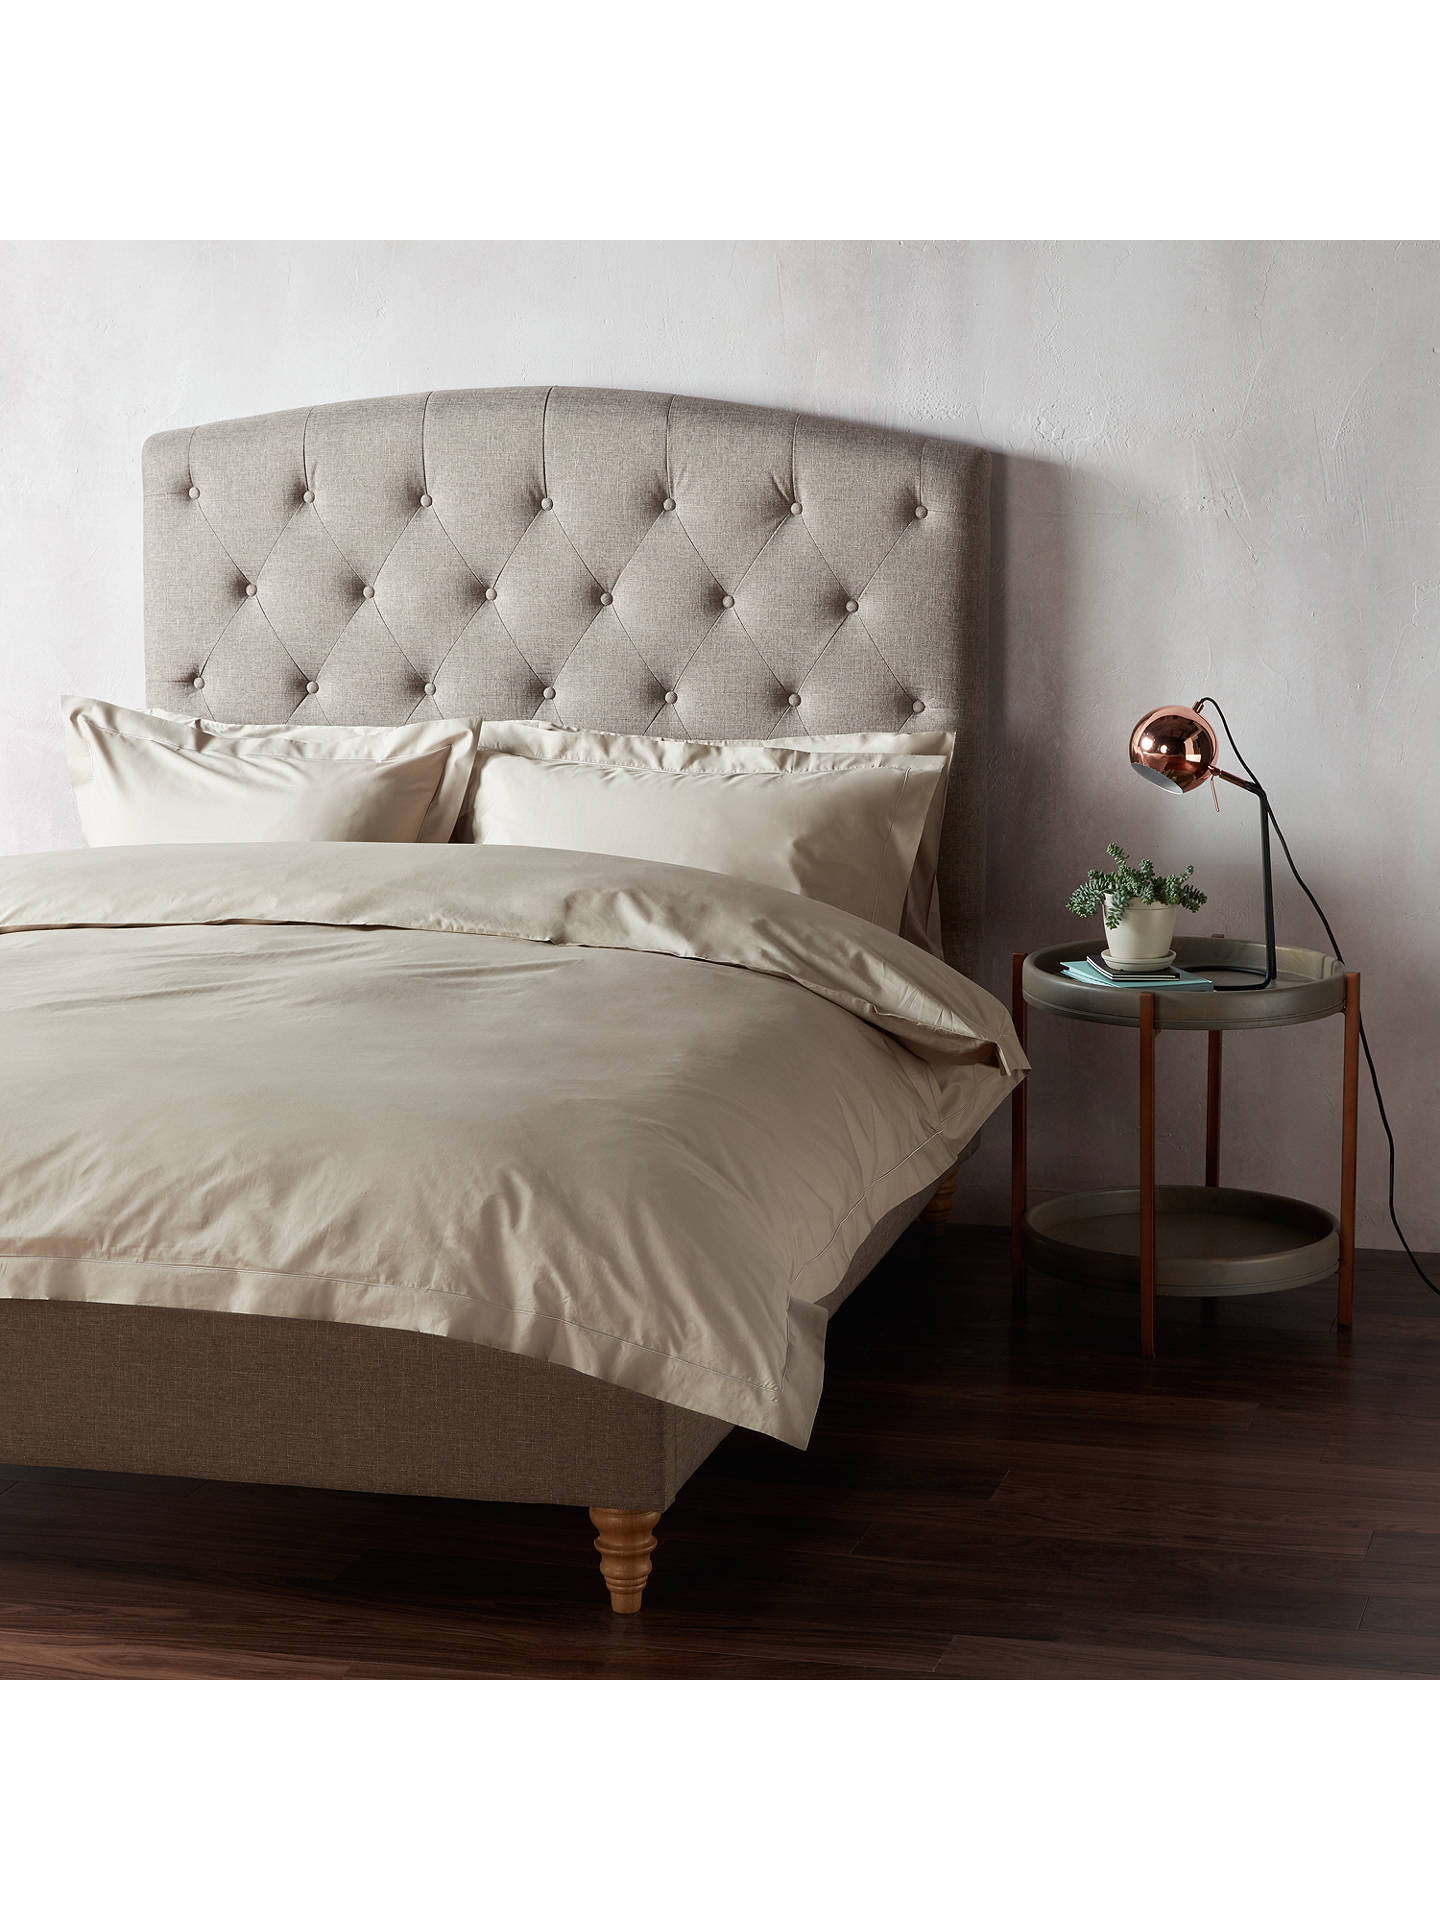 BuyJohn Lewis & Partners 400 Thread Count Crisp & Fresh Egyptian Cotton Oxford Pillowcase, Latte Online at johnlewis.com